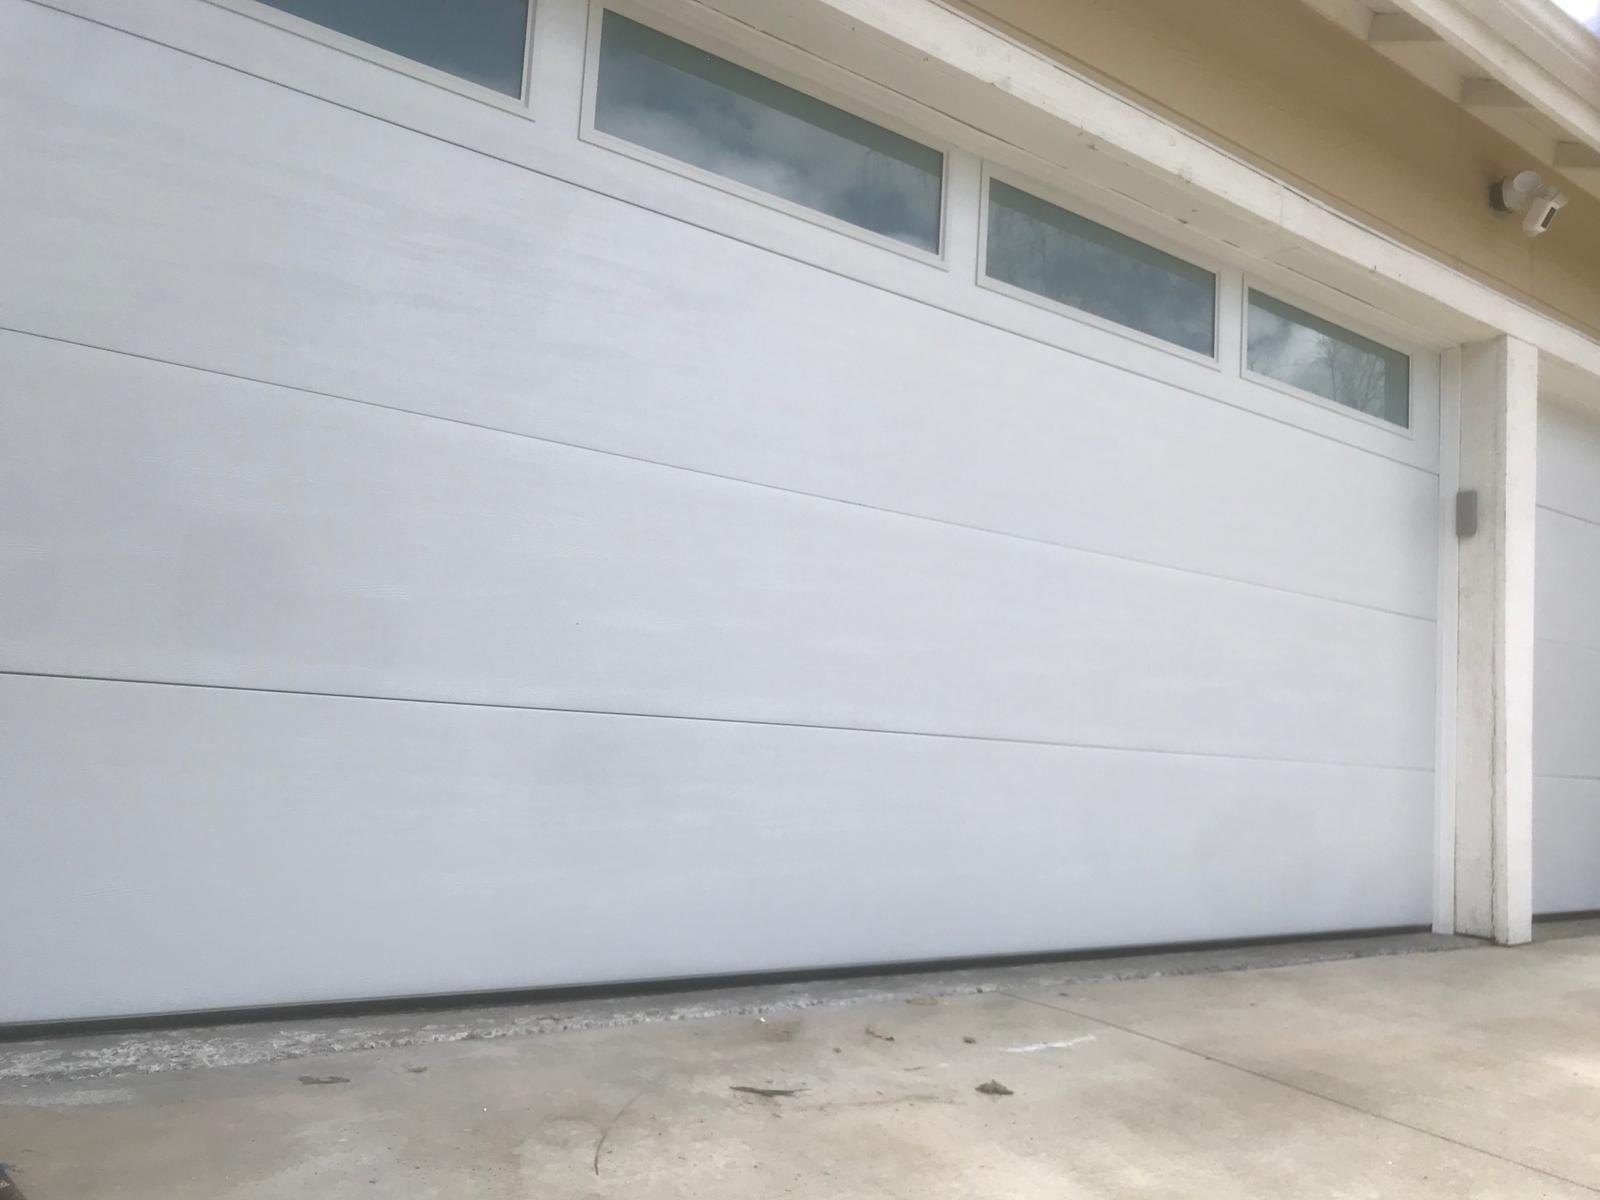 Garage Door Repair Huntington Park, Los Angeles